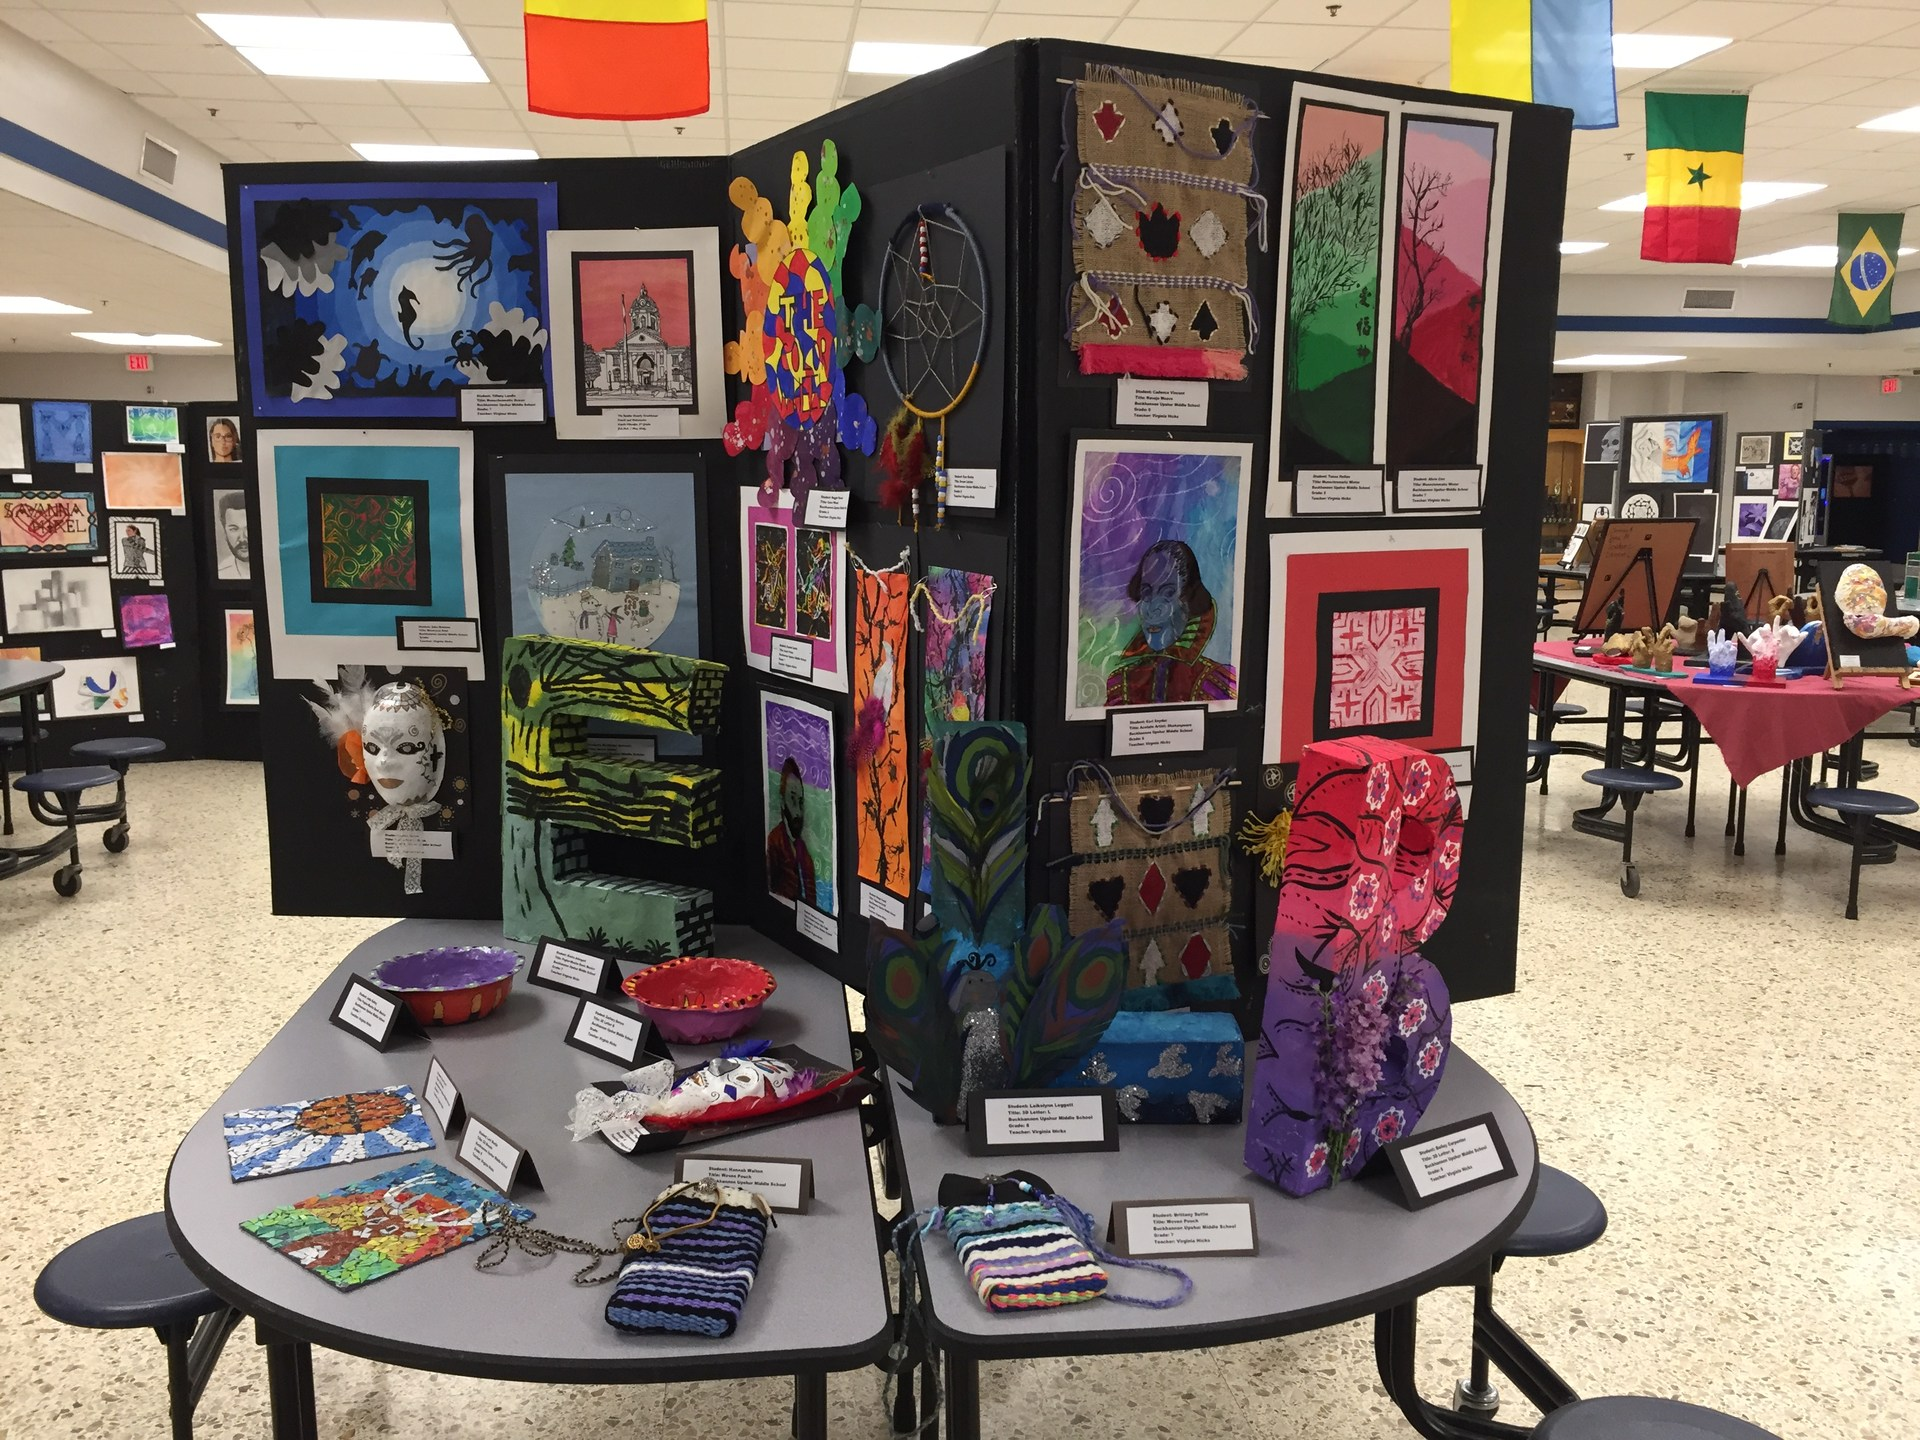 Amazing art by my 6th, 7th and 8th grade students!